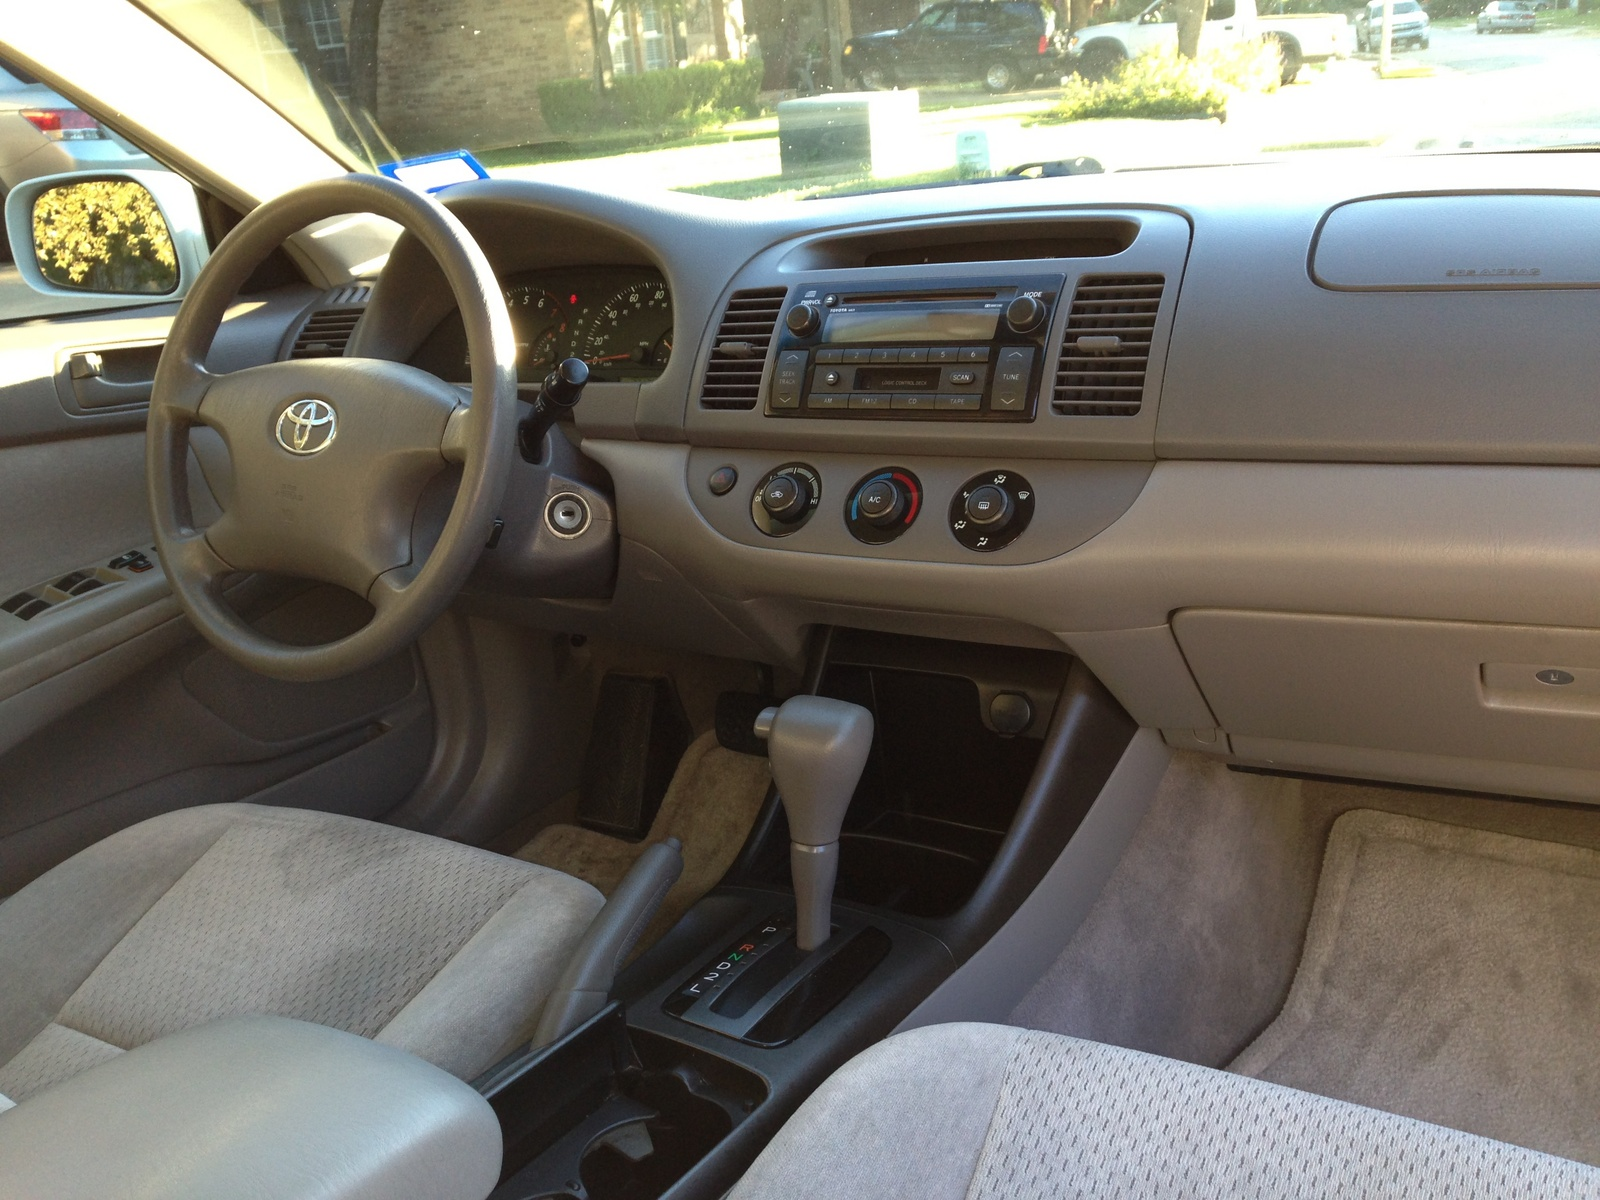 2002 toyota camry interior pictures cargurus. Black Bedroom Furniture Sets. Home Design Ideas